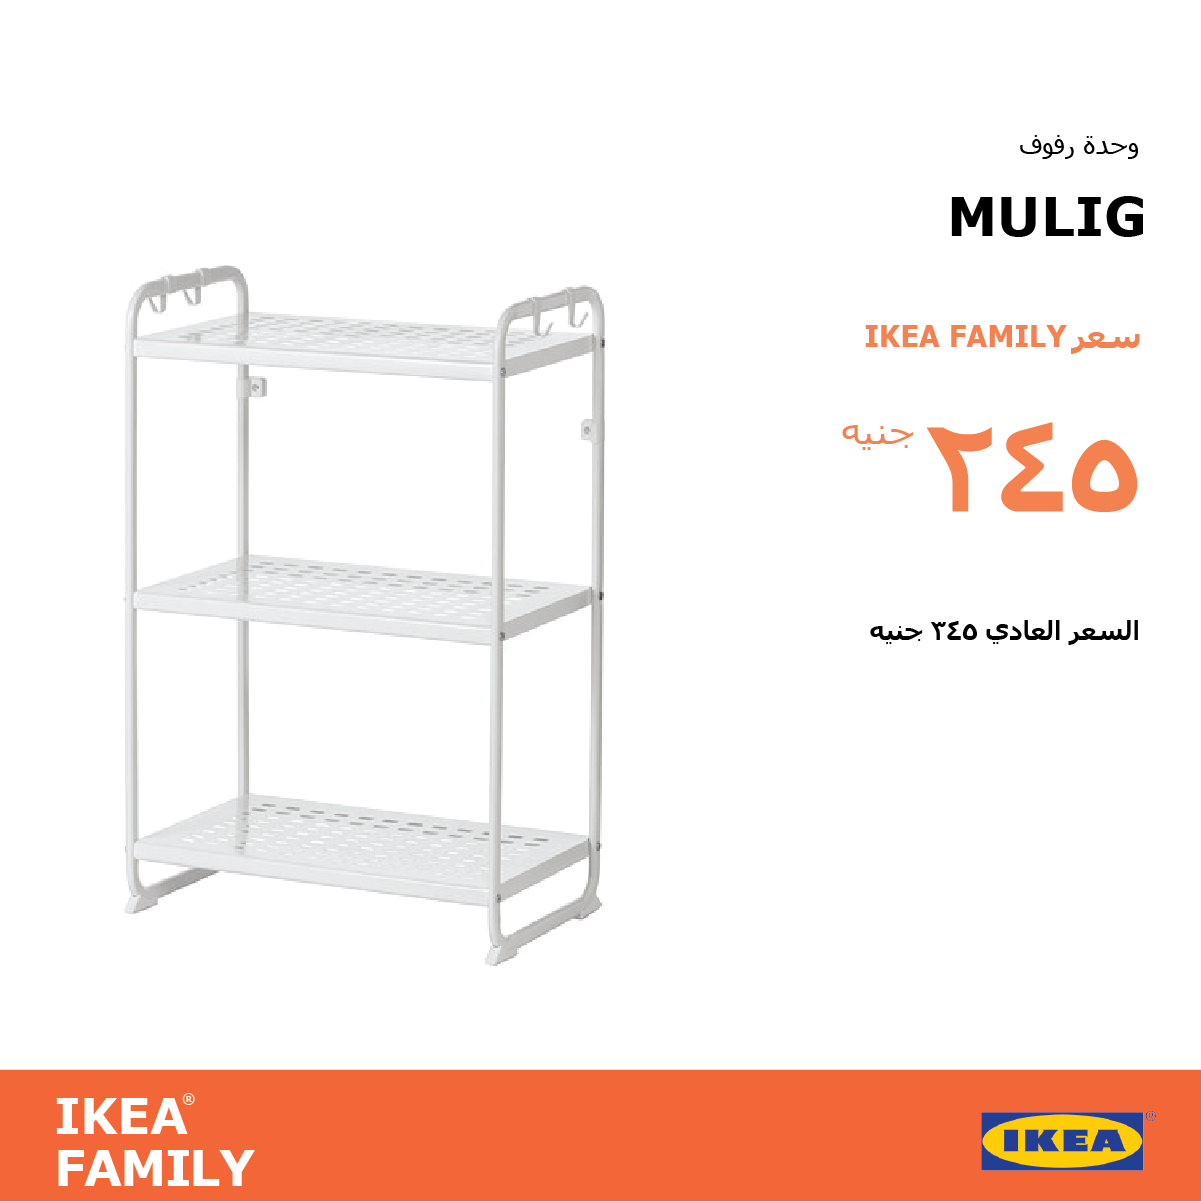 Buy Furniture Home Accessories Online In Egypt Shelving Unit Ikea Buying Furniture